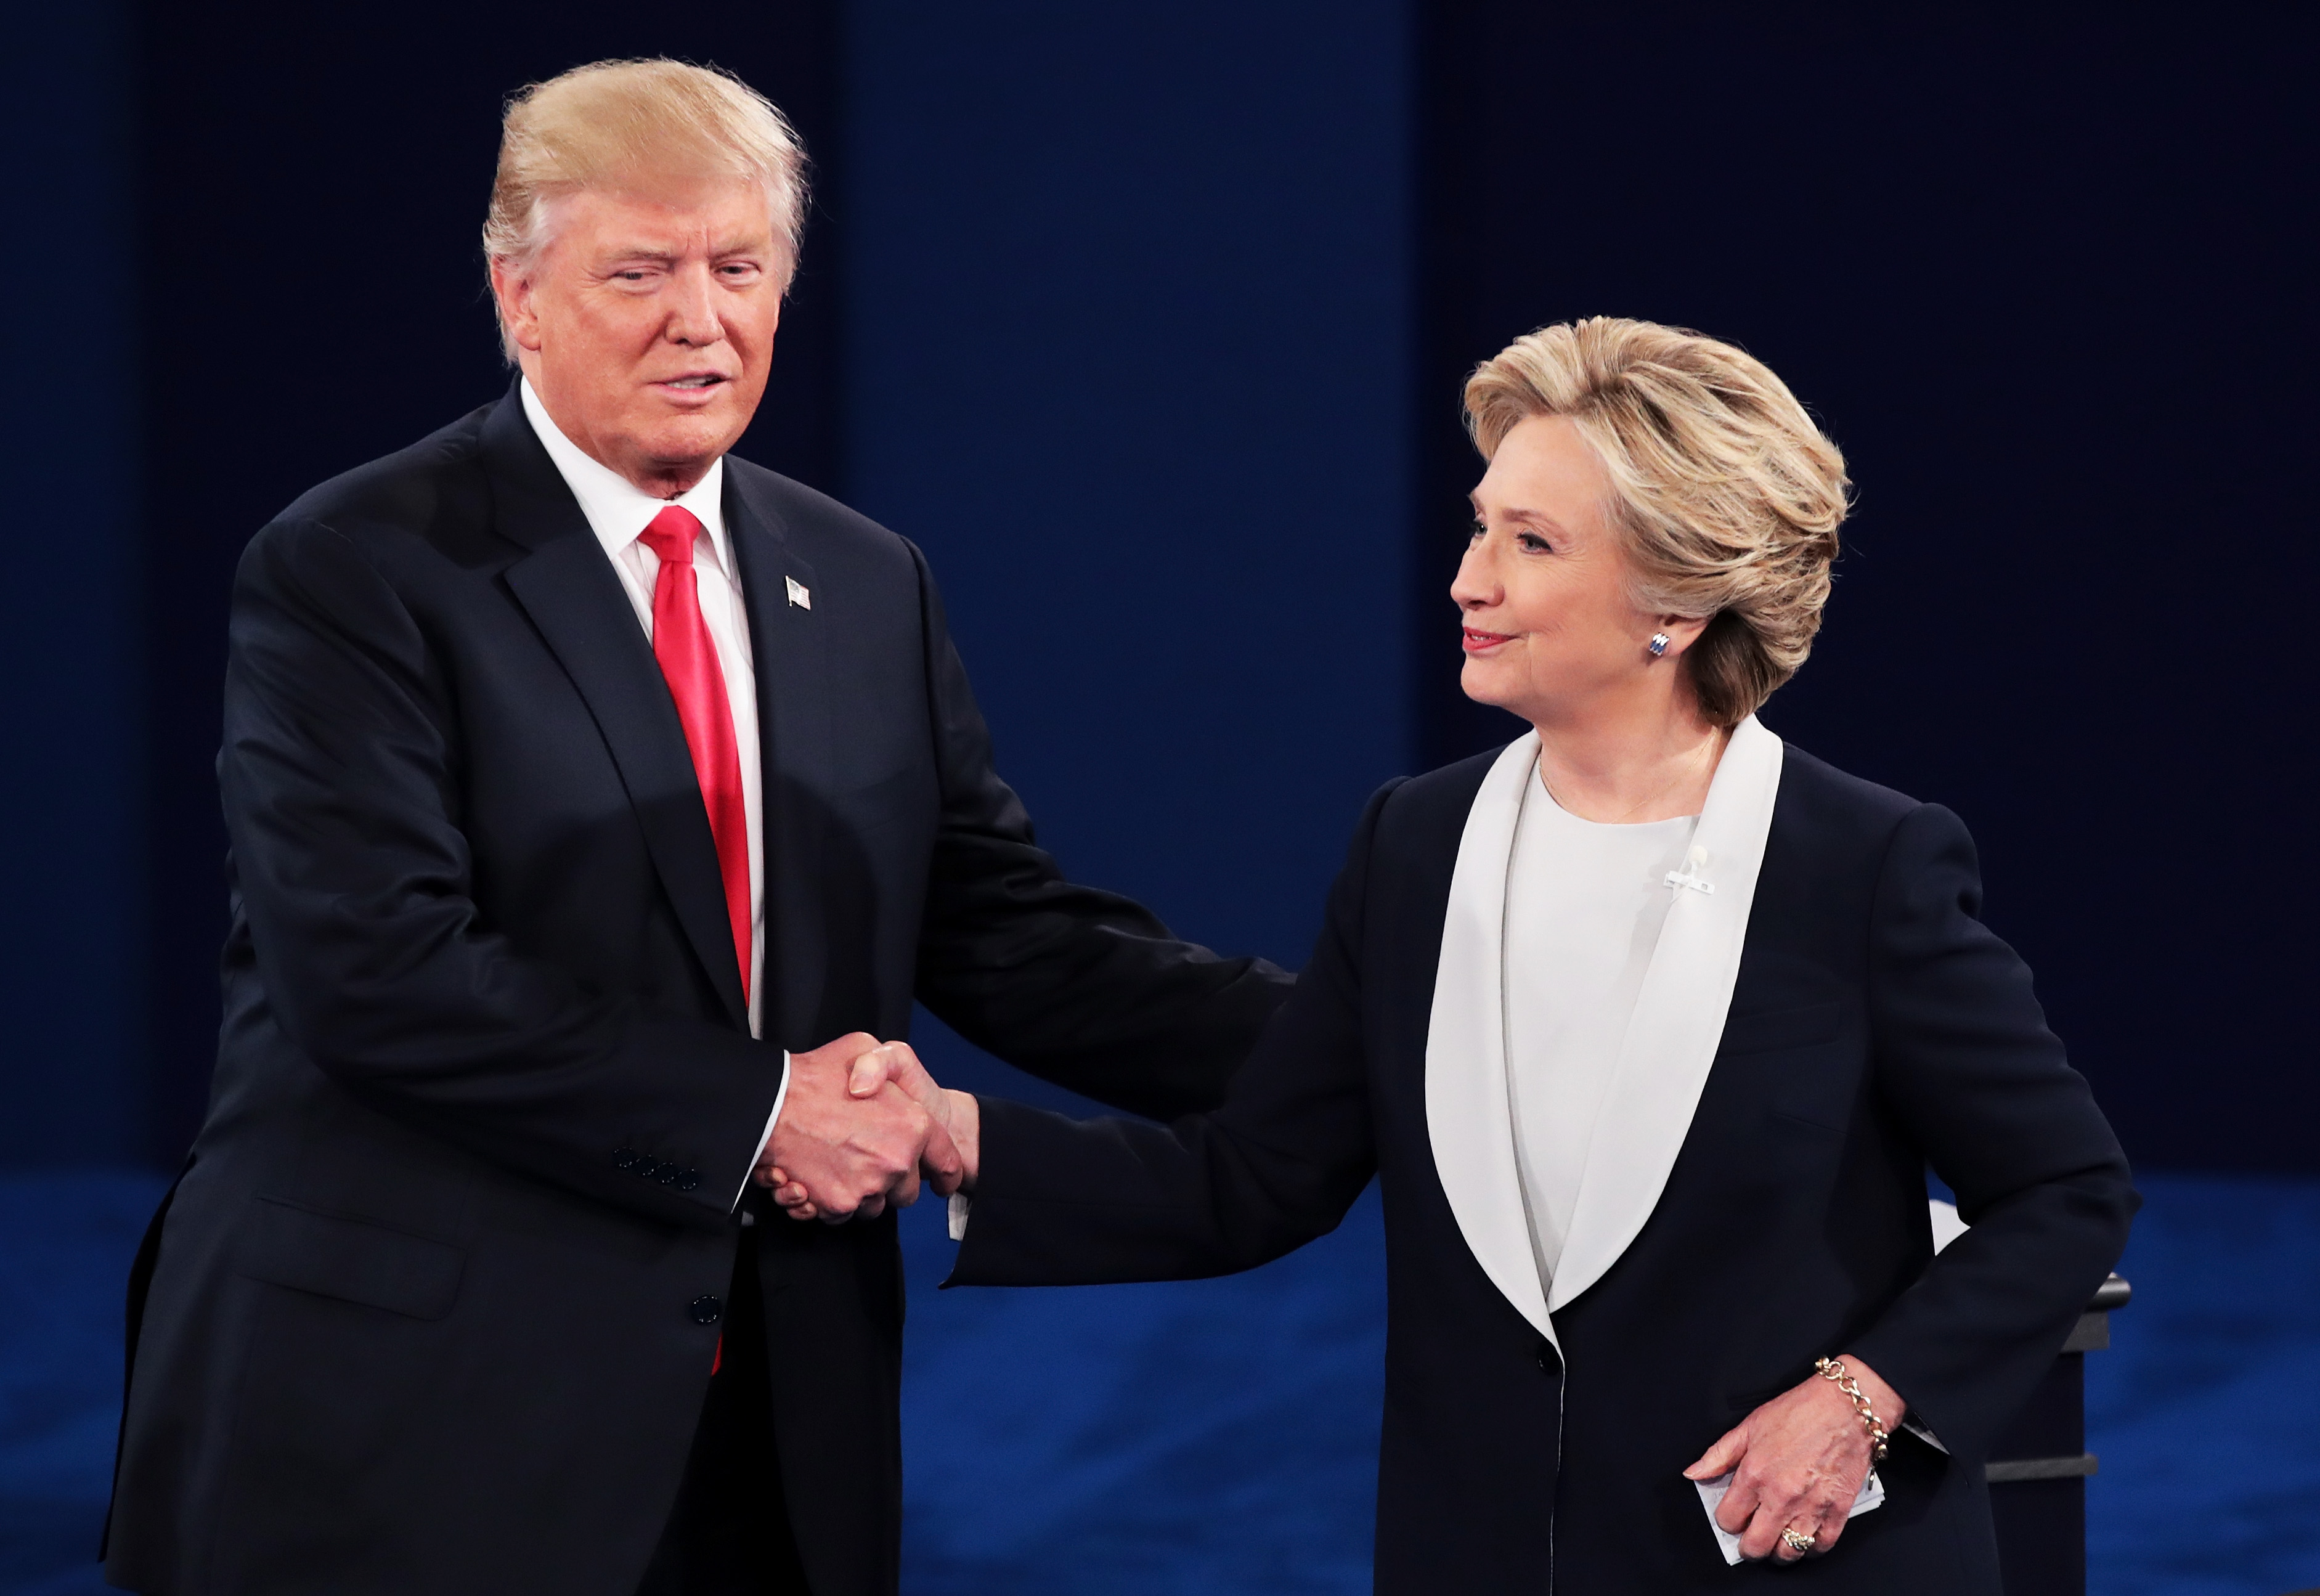 Where Clinton and Trump Stand